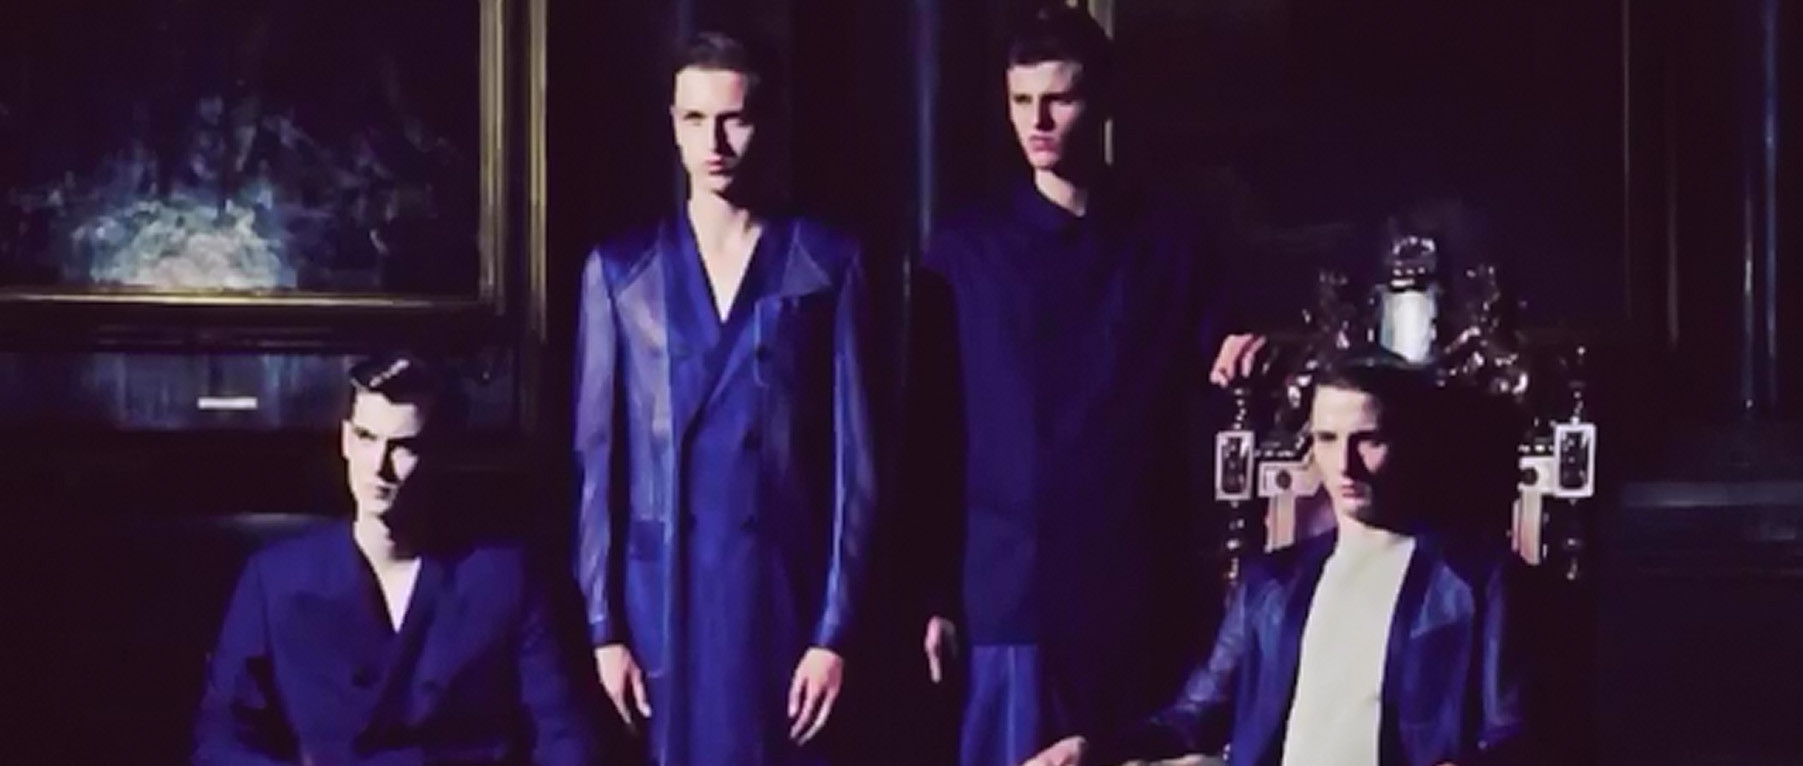 DIOR HOMME SPRING / SUMMER 2013 FOR HERO MAGAZINE EXCLUSIVE VIDEO PREVIEW